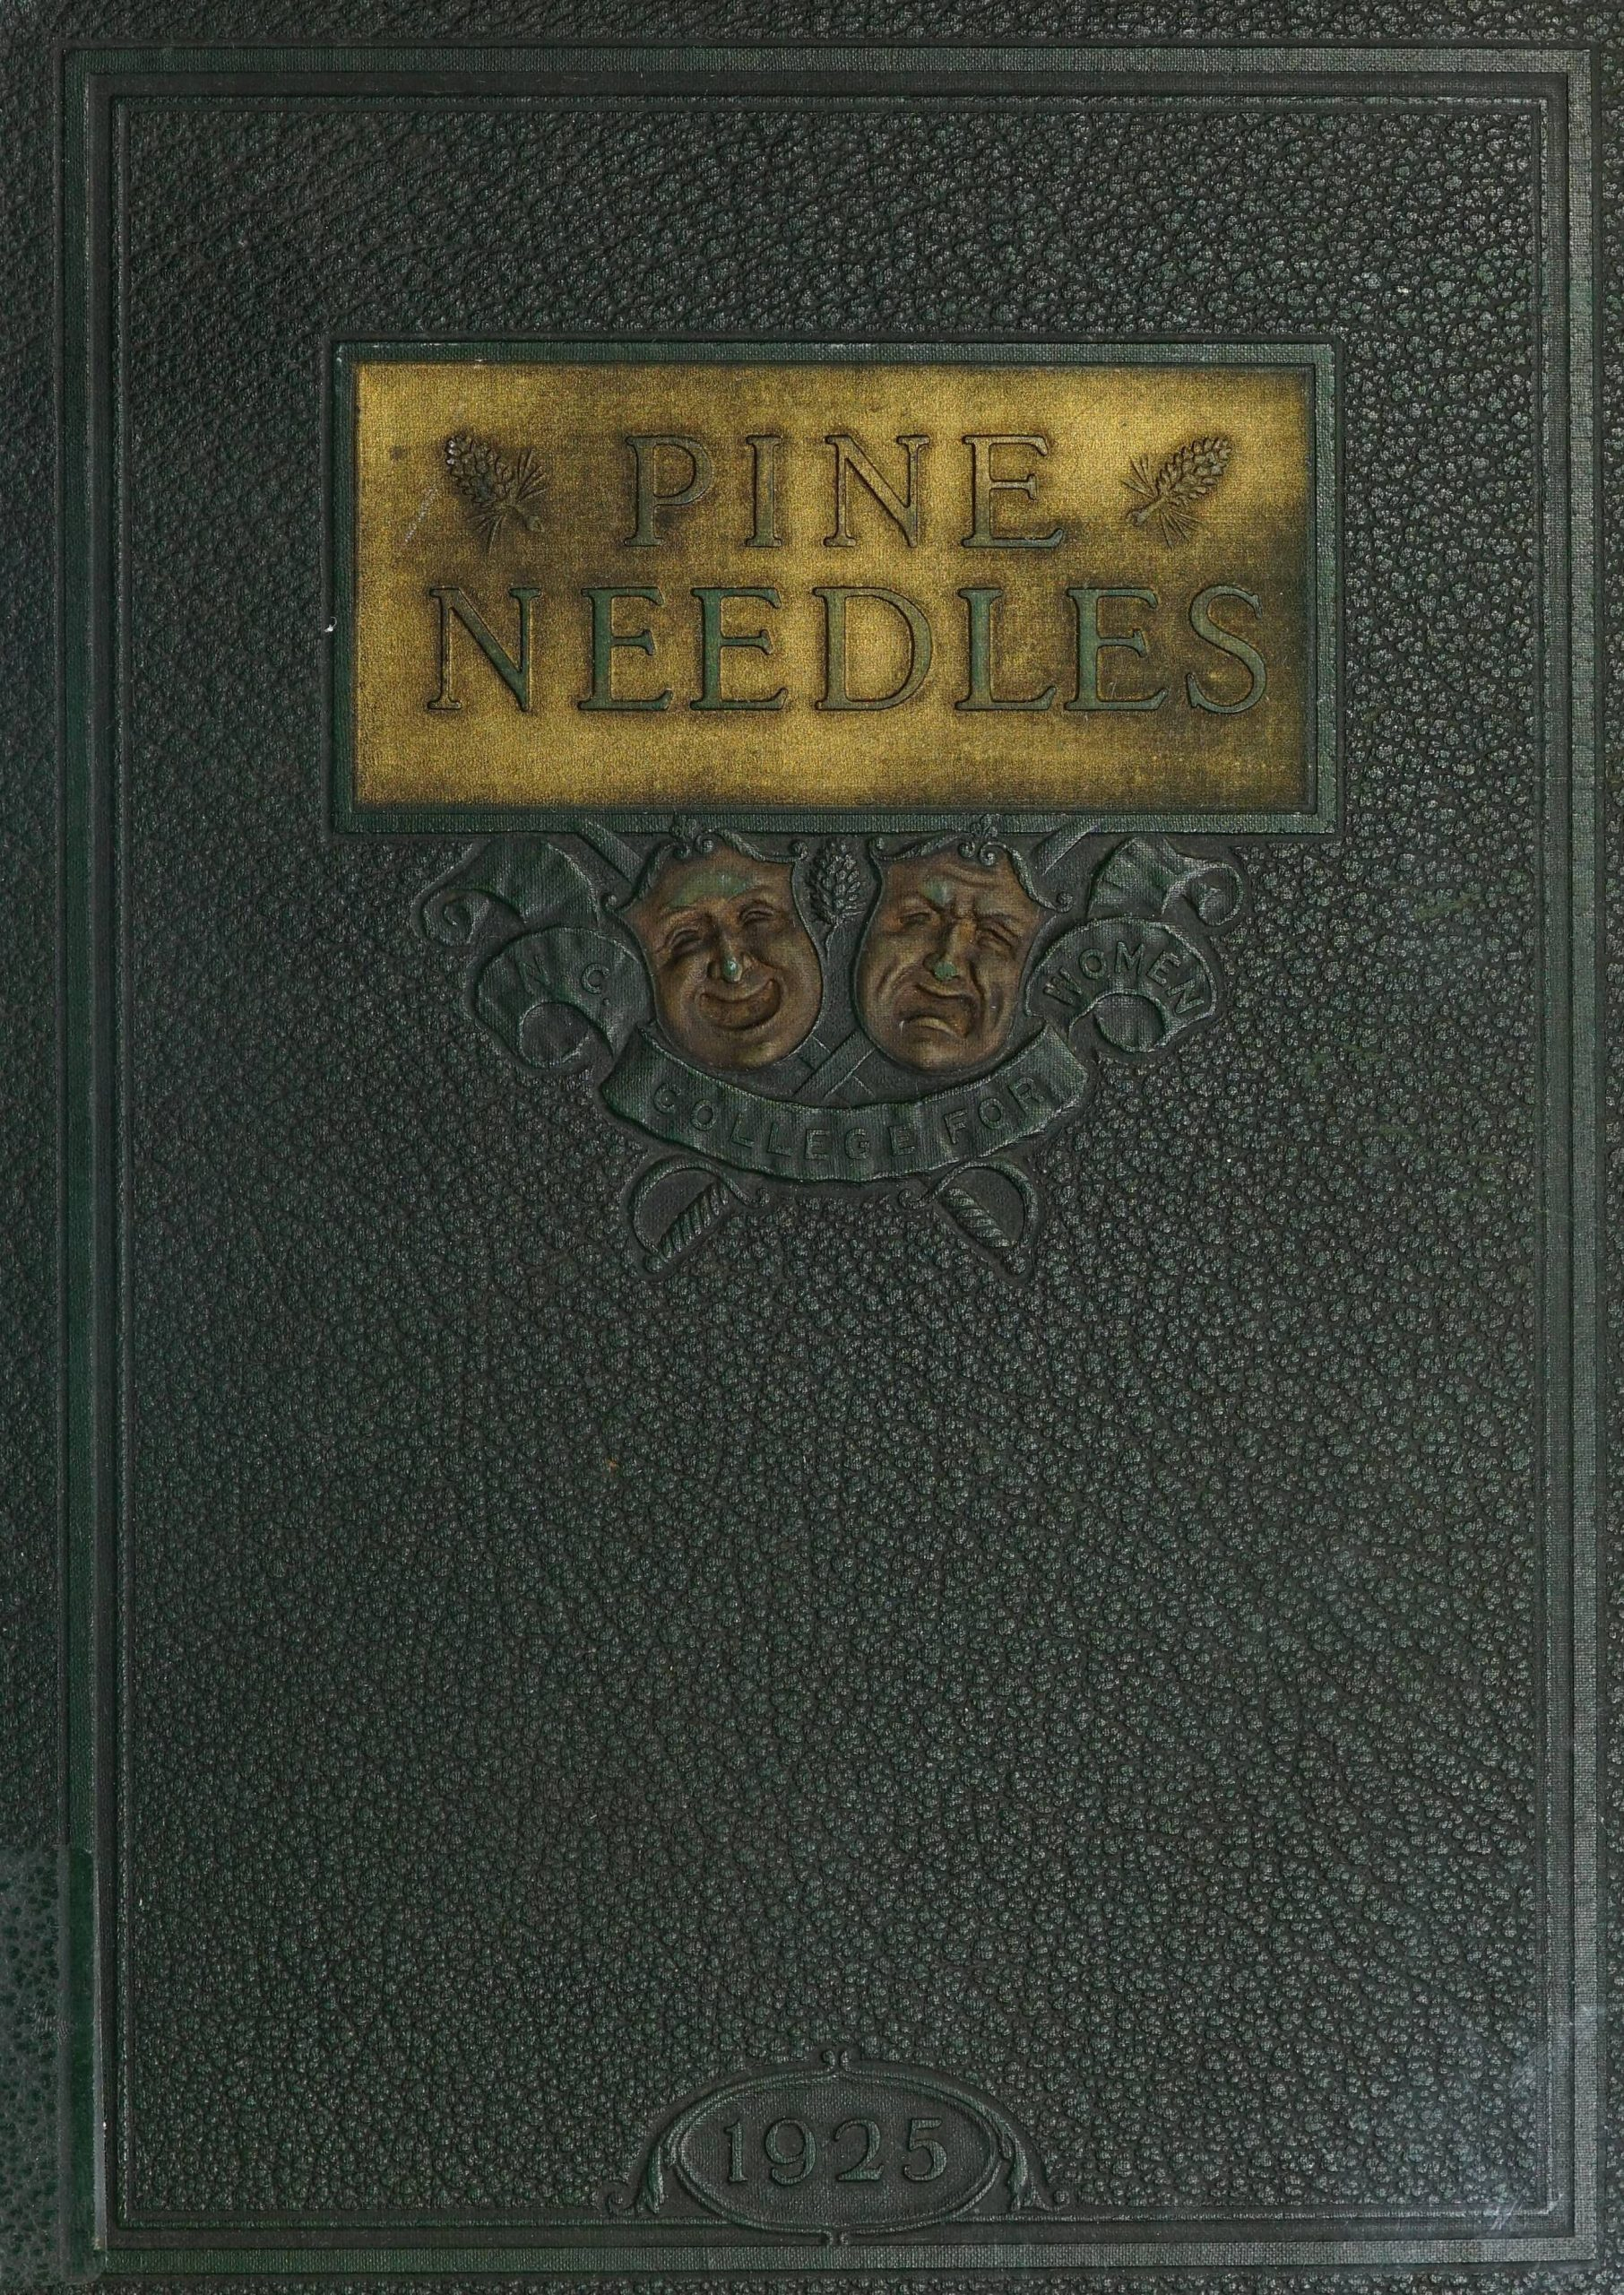 Pine Needles 1925 cover. Below the title are happy and sad drama masks.